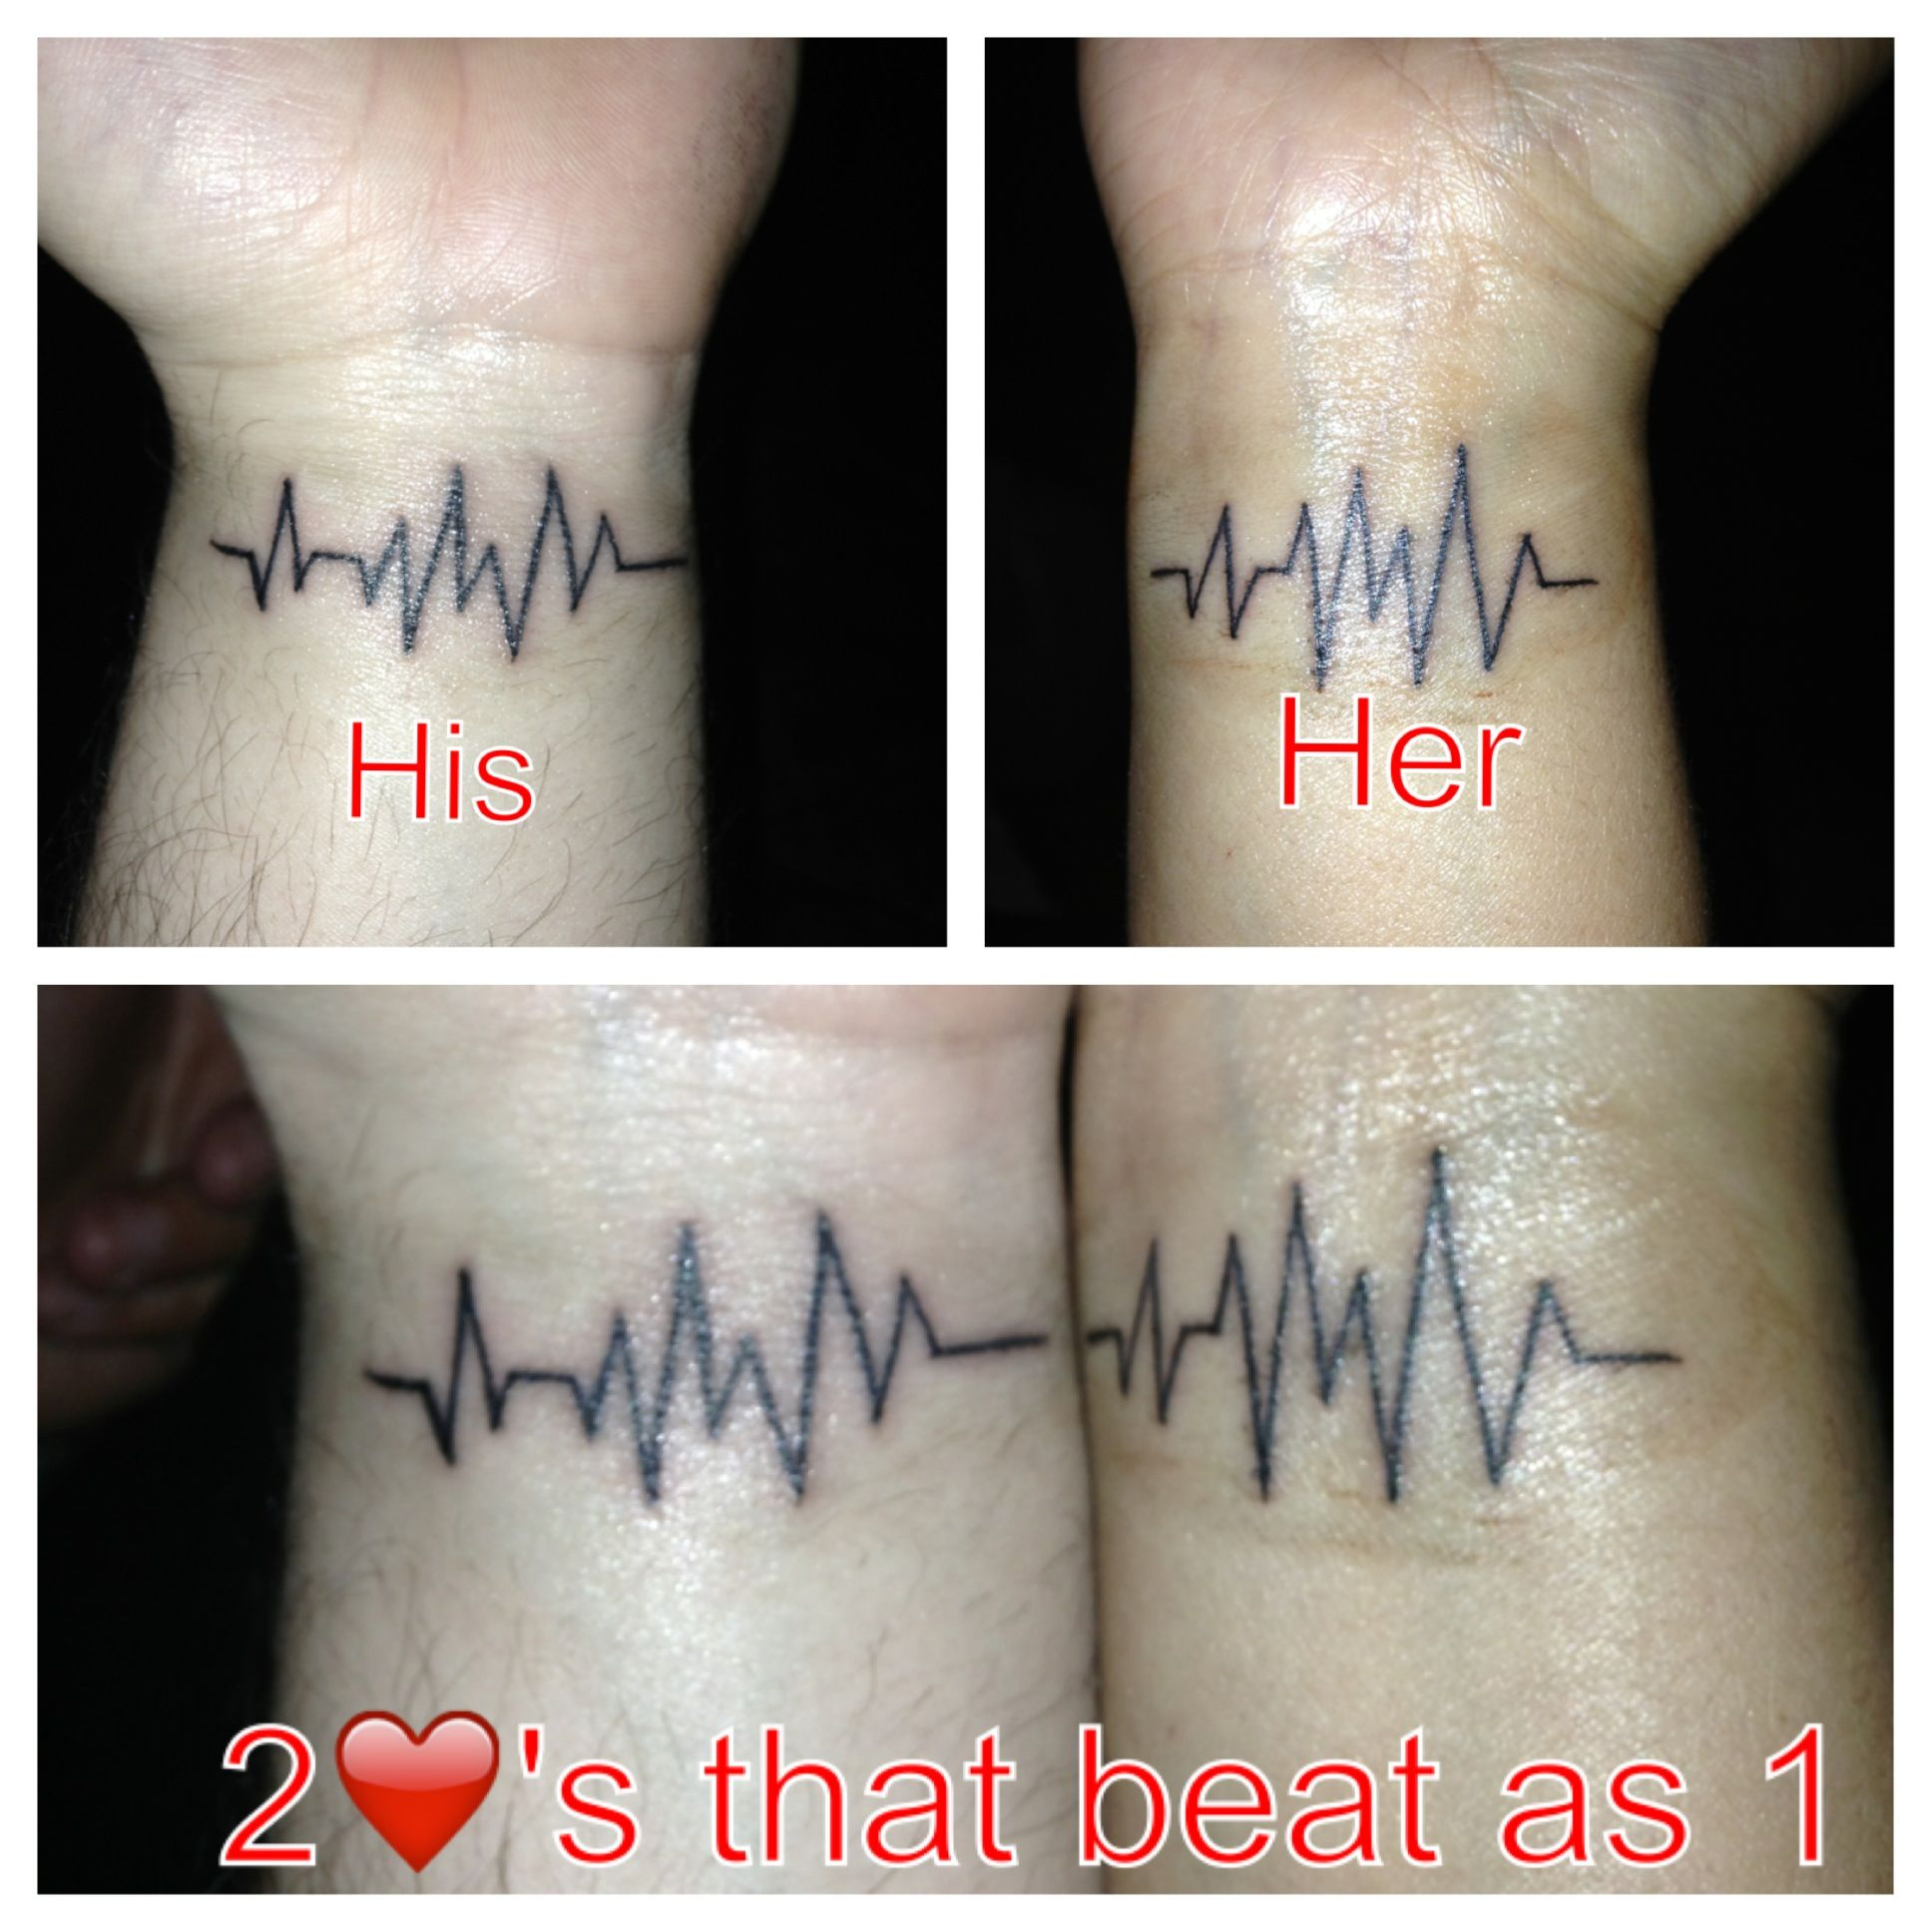 "His & Her matching heart rate tattoos ""2 's that beat as"